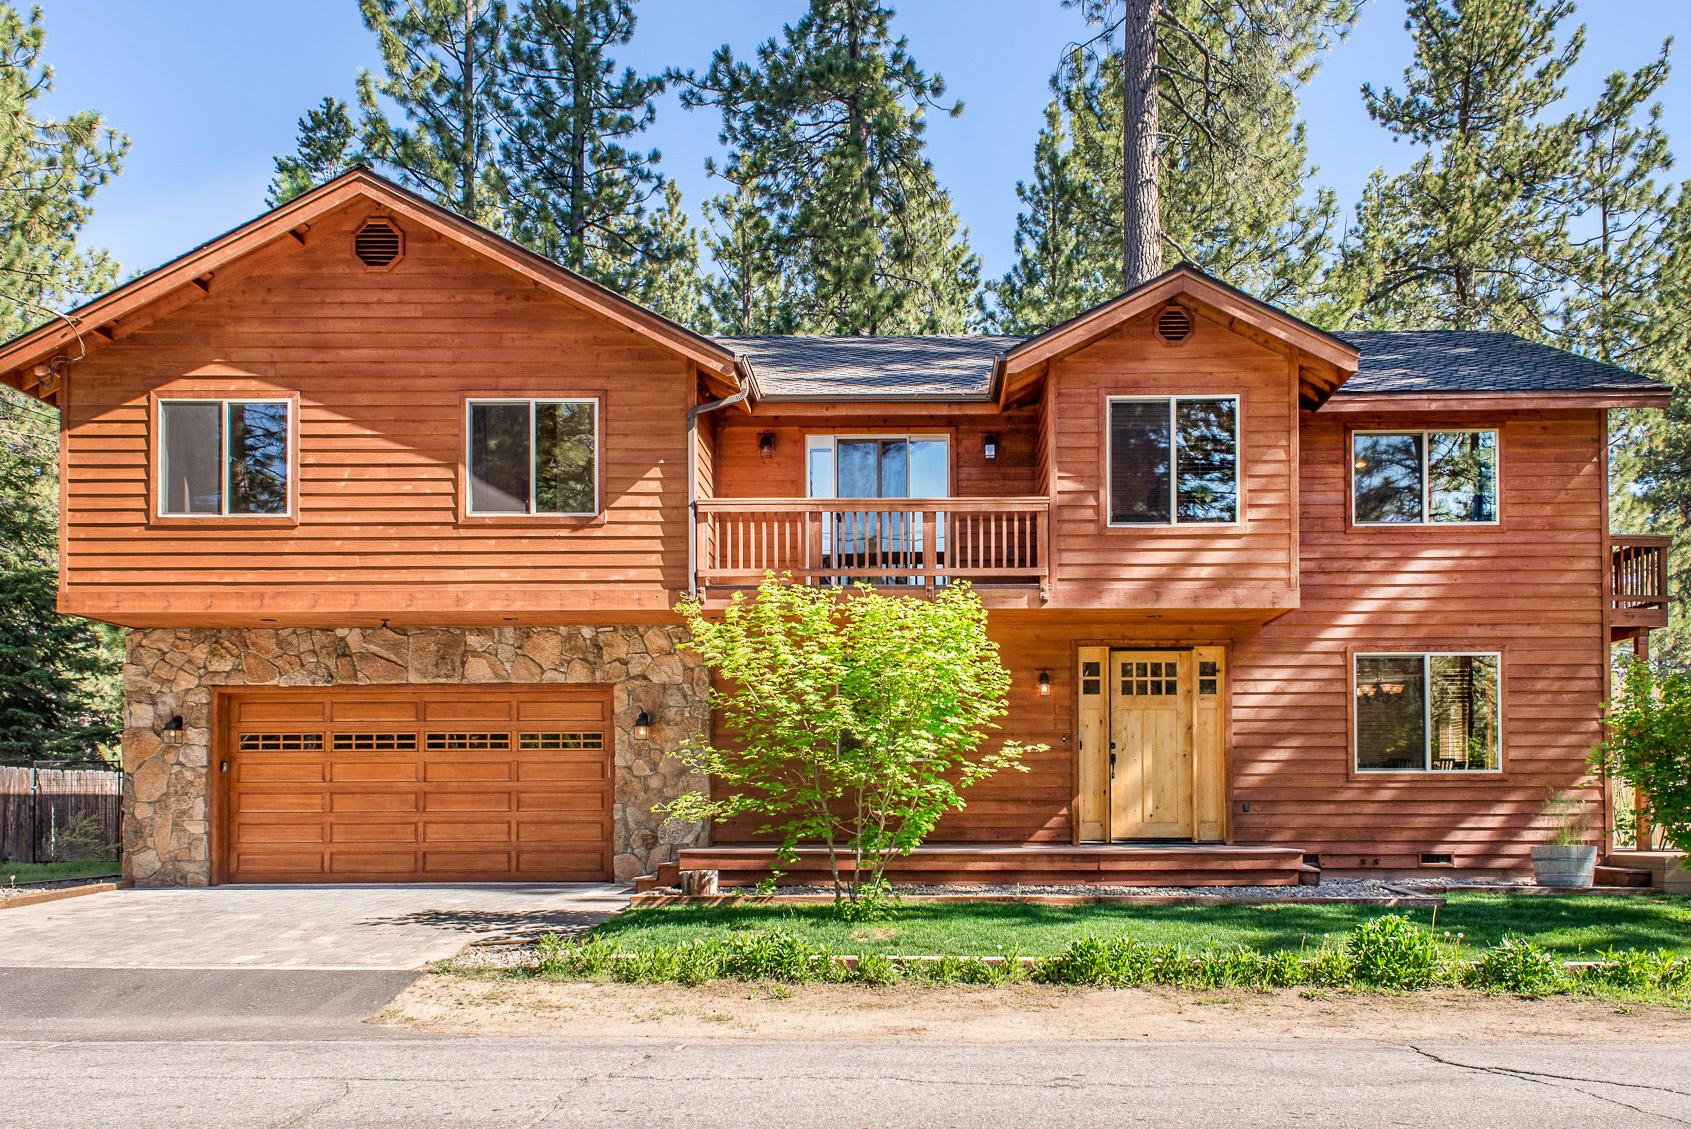 Welcome to South Lake Tahoe! This property is professionally managed by Turnkey Vacation Rentals.